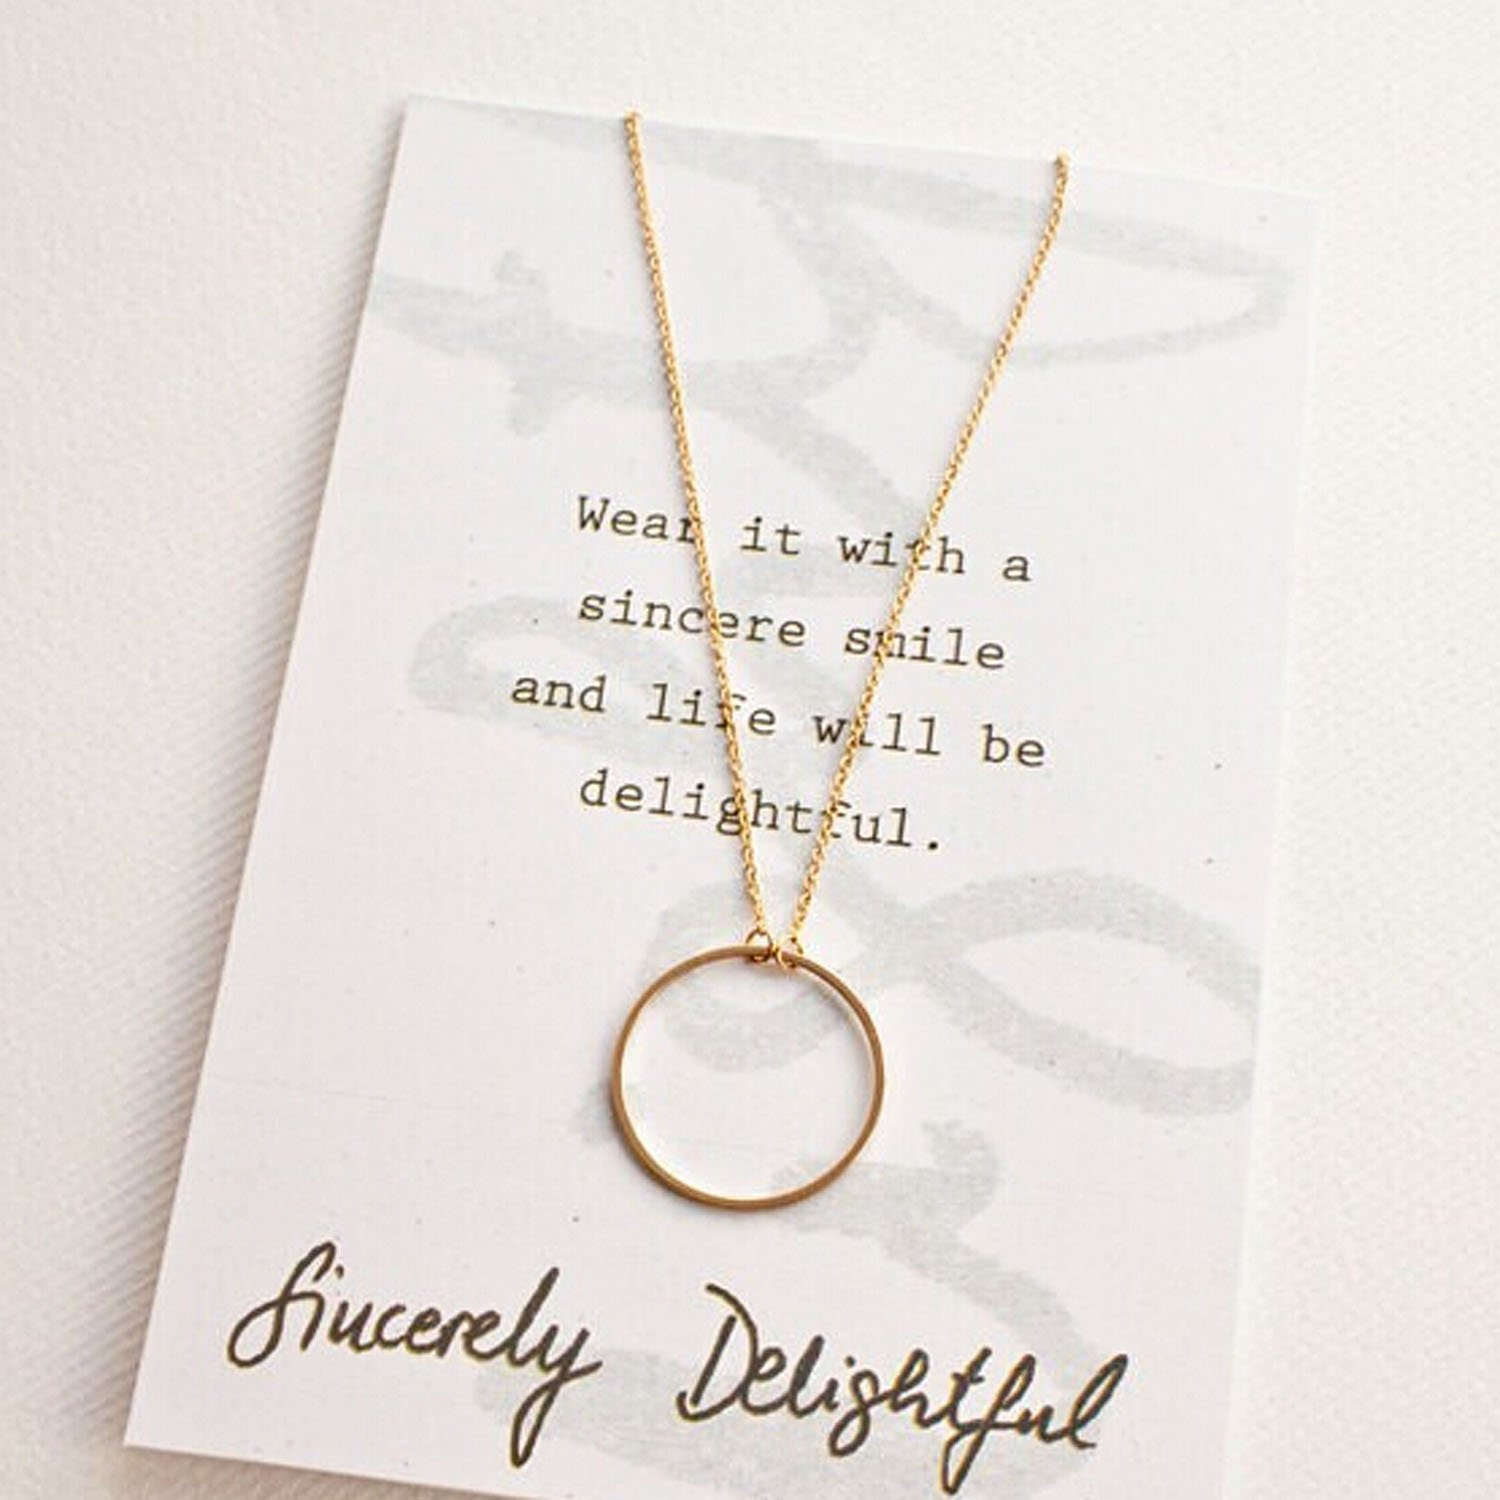 Nero 2015 Hot Chic Circle Shaped Lariat Style Single Chain Jewelry Necklaces for Women